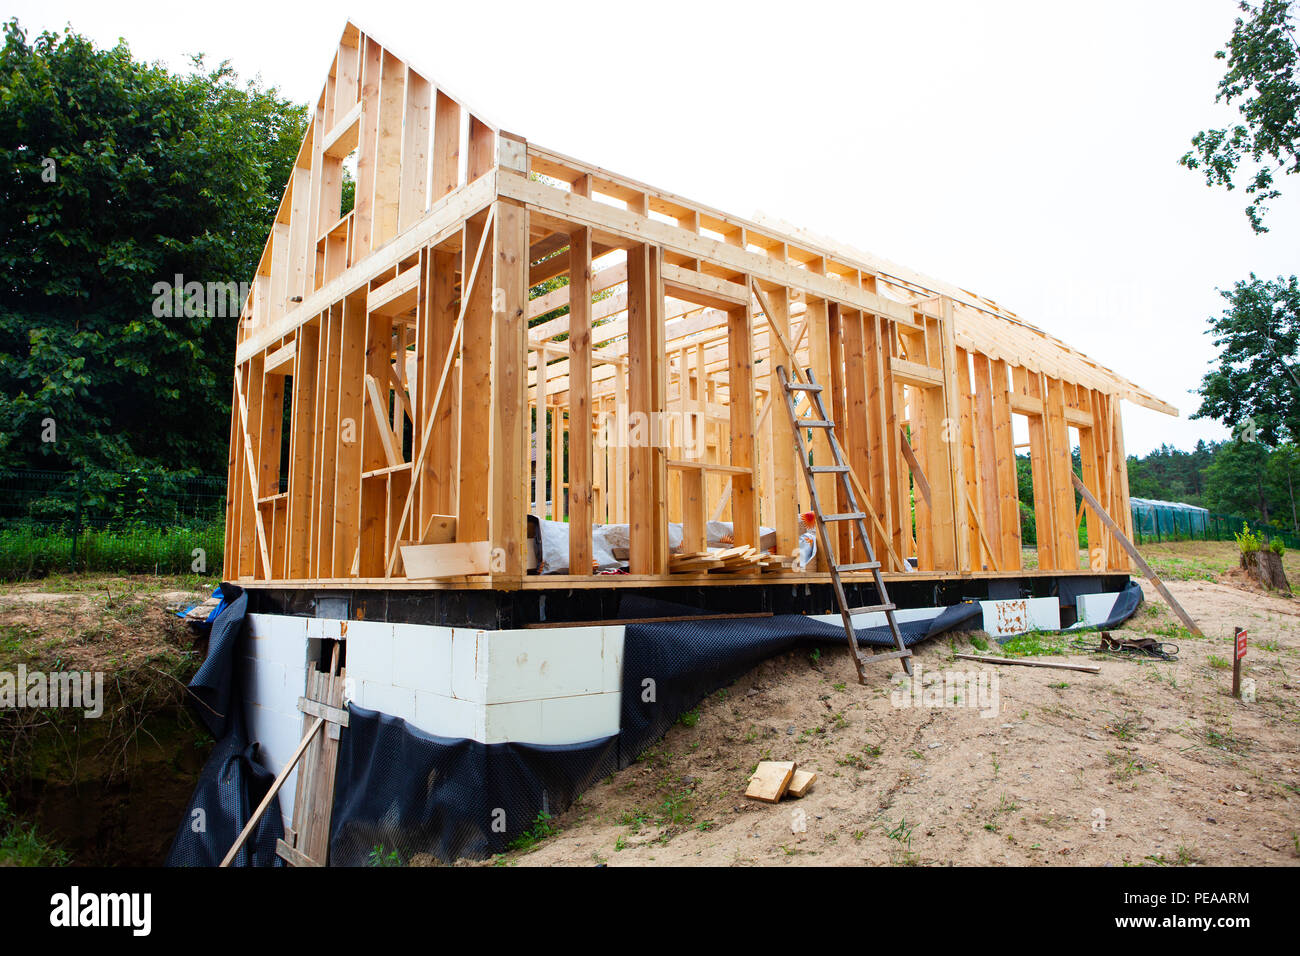 Stick built home under construction, new build roof with